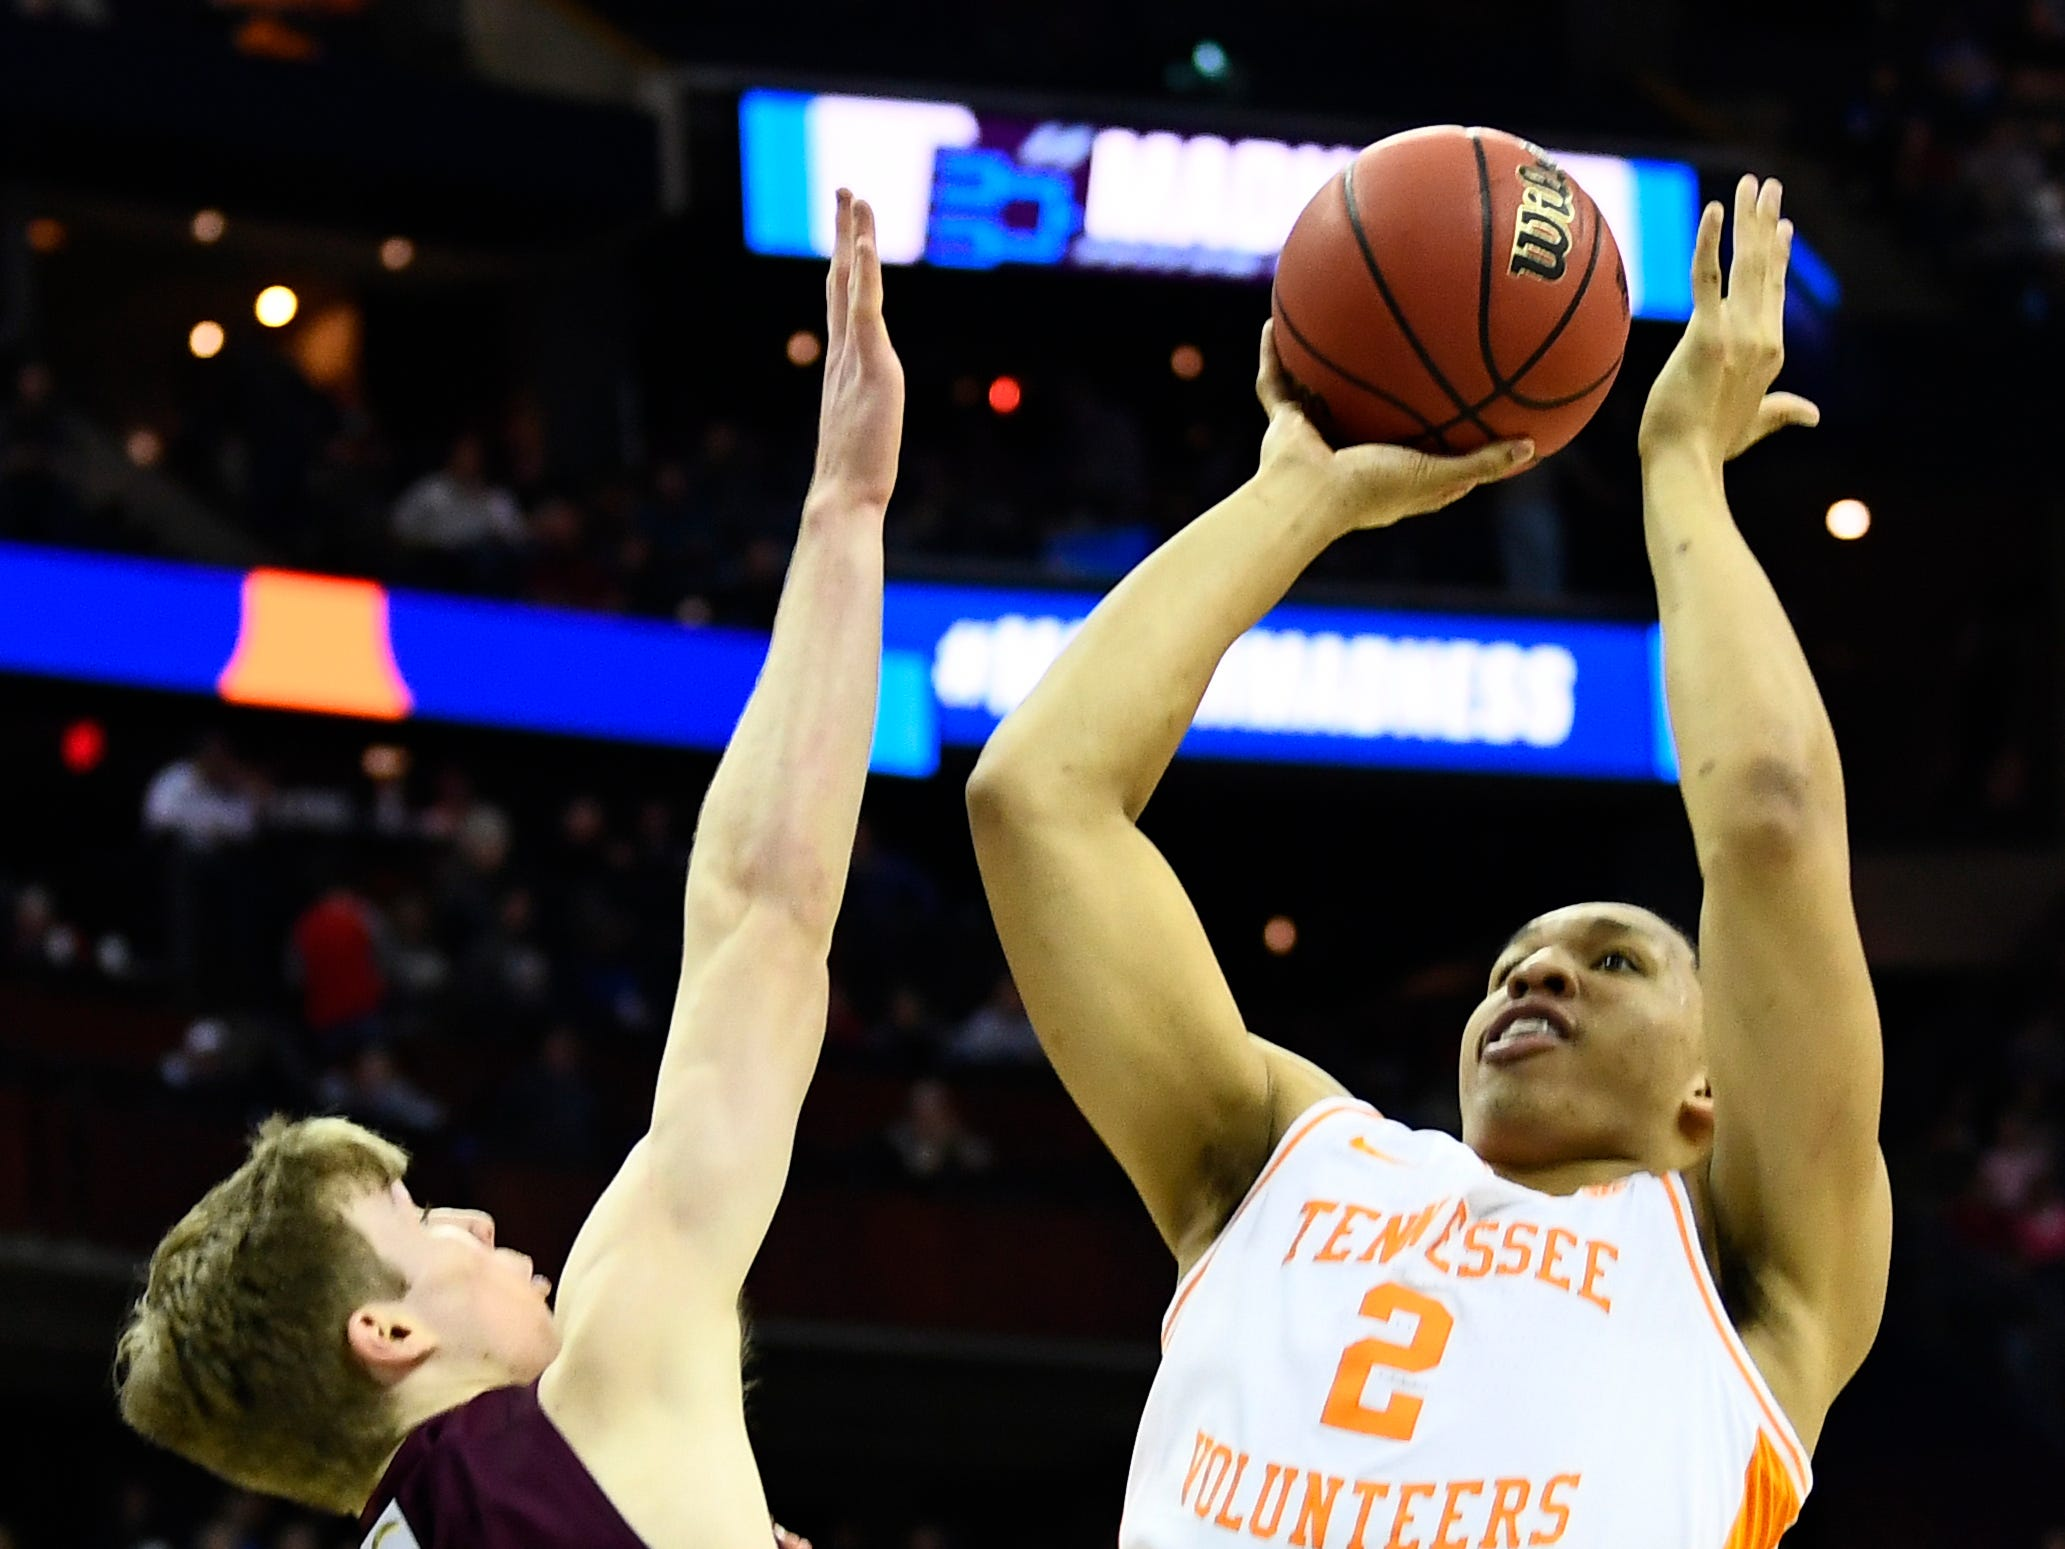 Tennessee forward Grant Williams (2) shoots over Colgate guard Tucker Richardson (15) during their first round game of the NCAA Tournament at Nationwide Arena in Columbus, Ohio, on Friday, March 22, 2019.